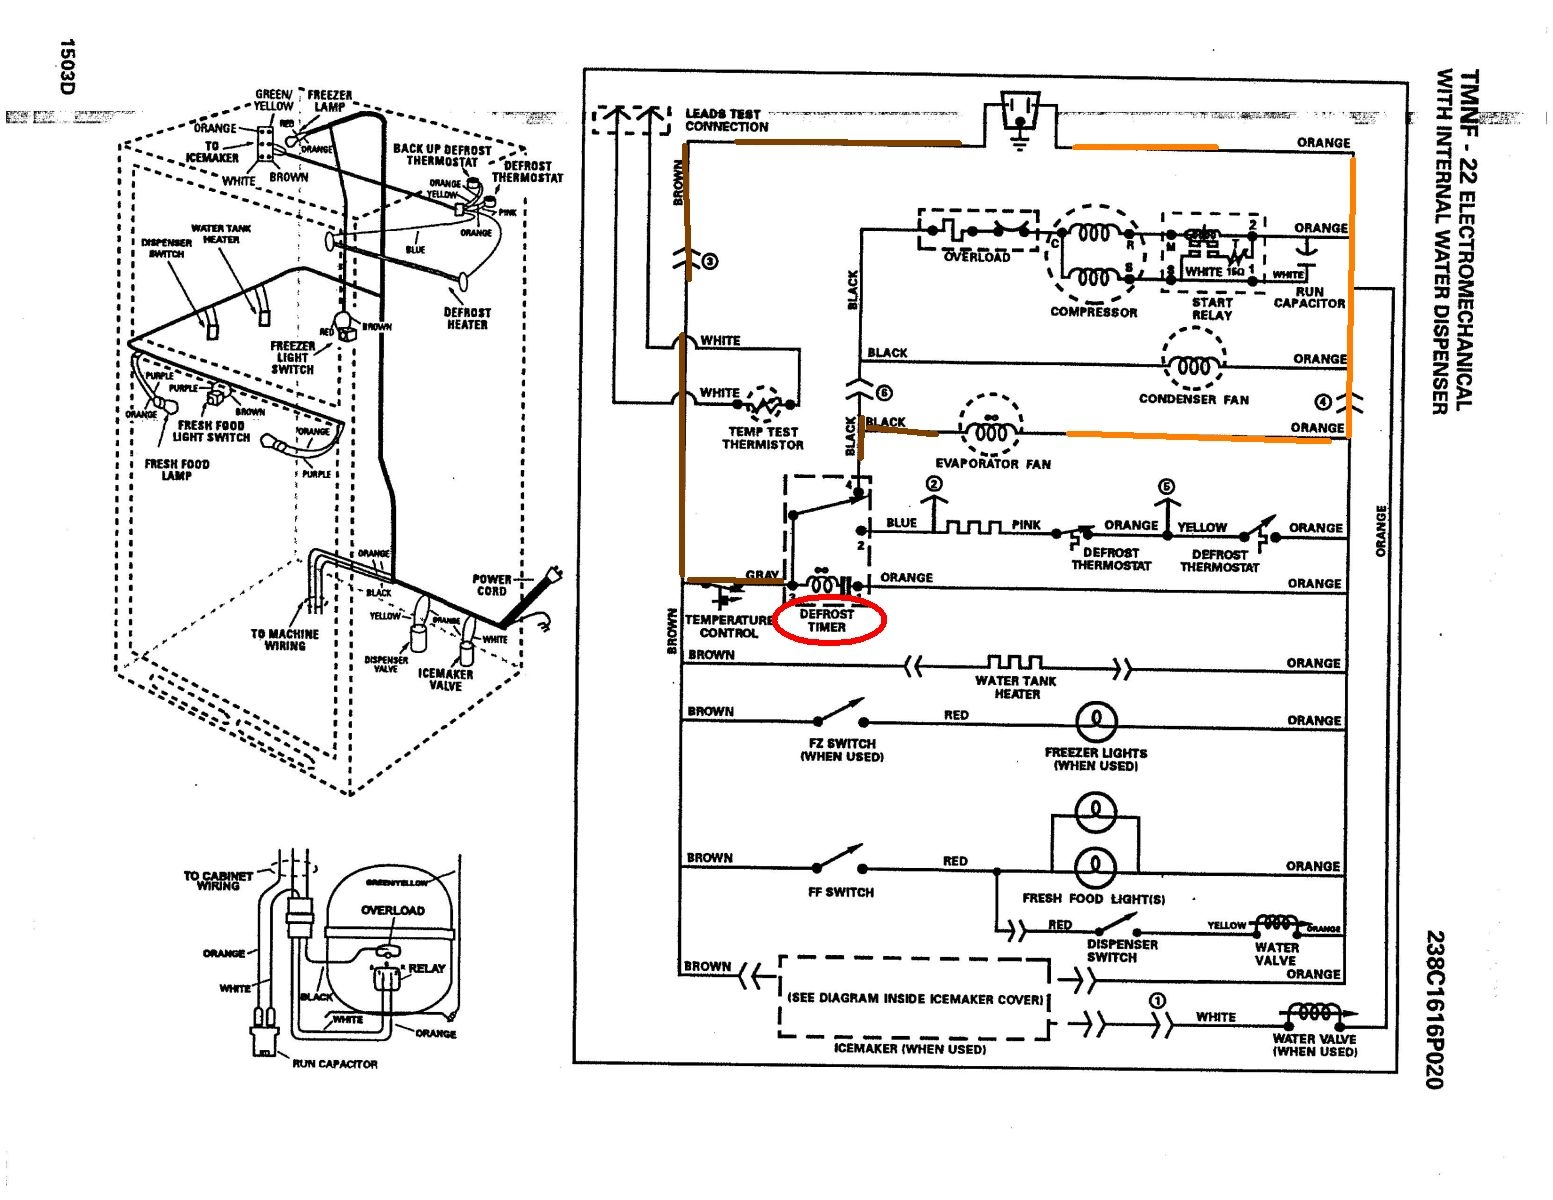 refrigeration wiring diagram schematic diagram heatcraft cooler wiring-diagram wiring diagrams for freezer wiring diagram detailed heatcraft refrigeration wiring diagrams ge refrigerator schematics wiring library